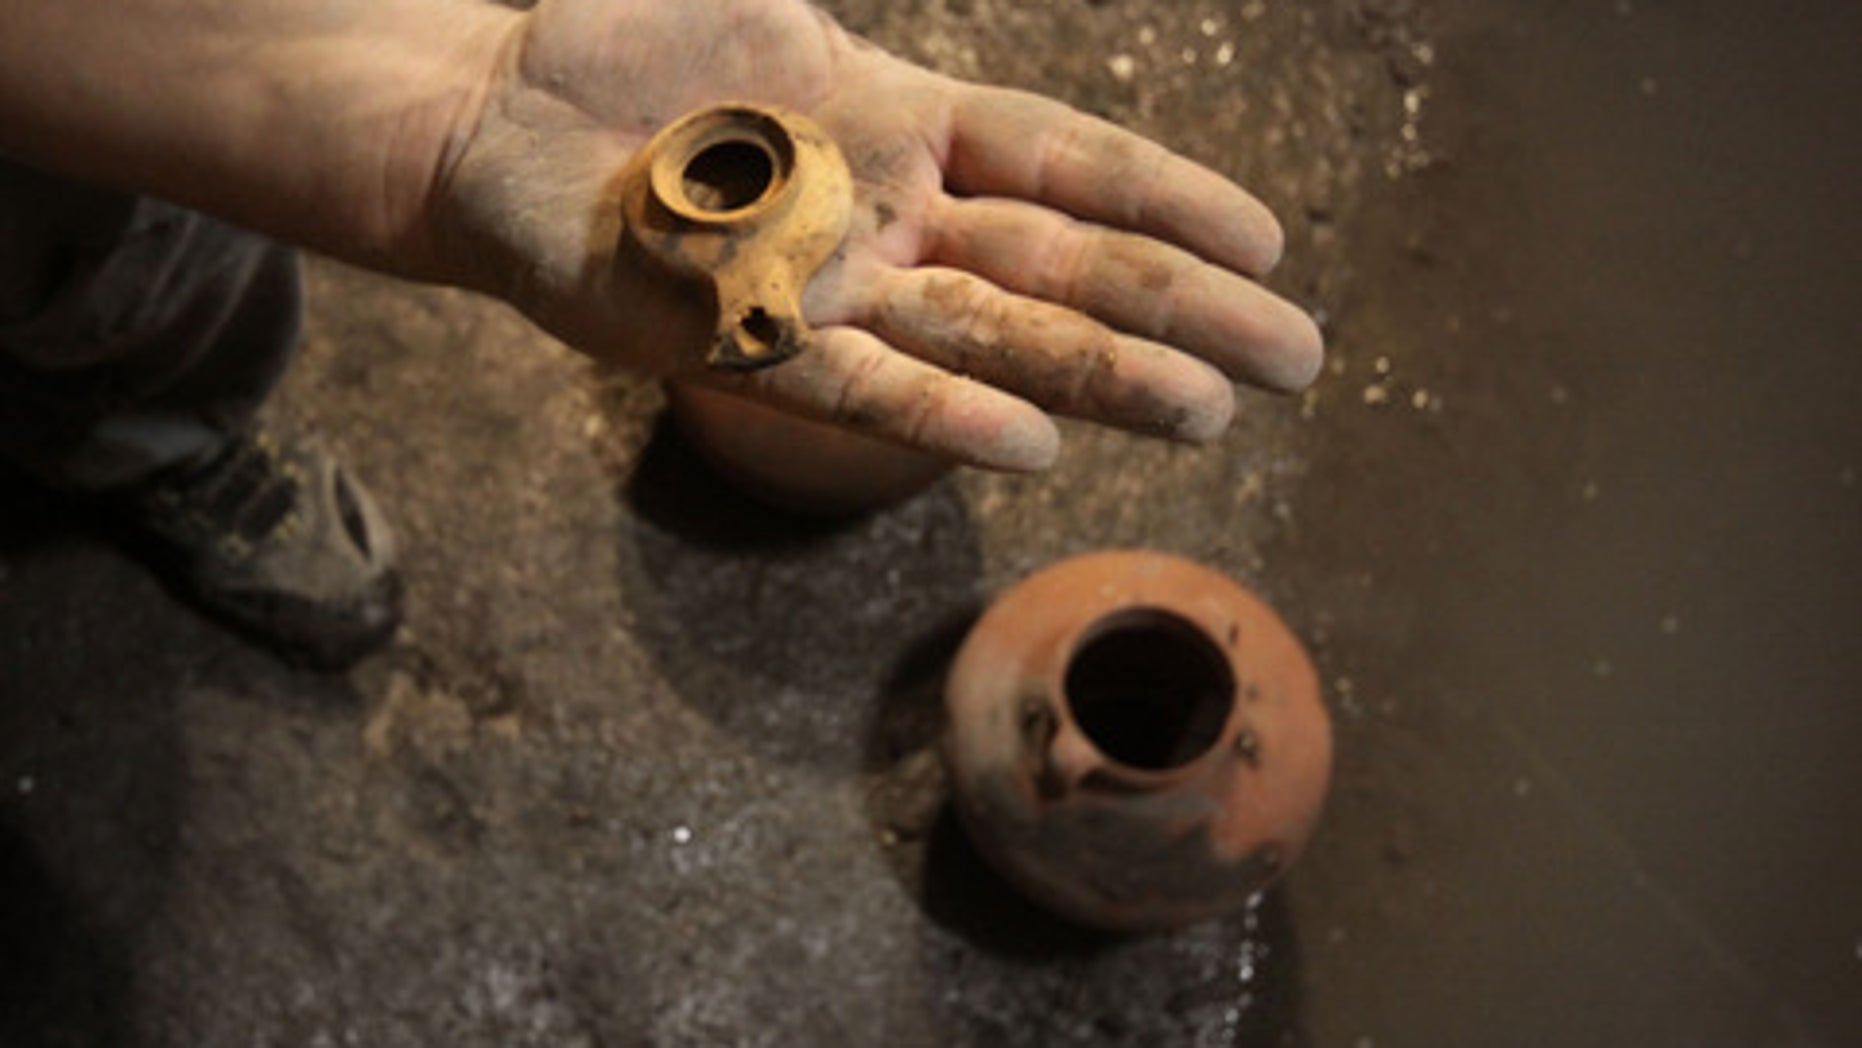 This ceramic oil lamp and two cooking pots were found in a cistern in Jerusalem and date back to the first Jewish revolt against the Romans (A.D. 66-73).